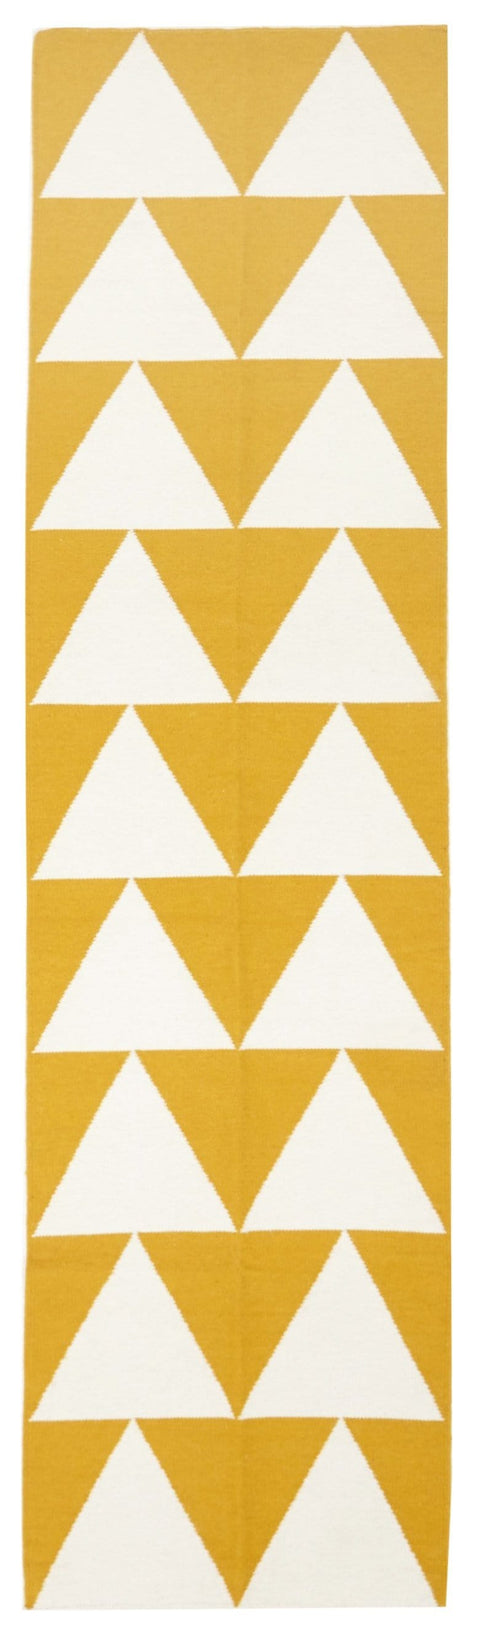 Oulu Yellow & White Triangle Flatweave Runner Rug